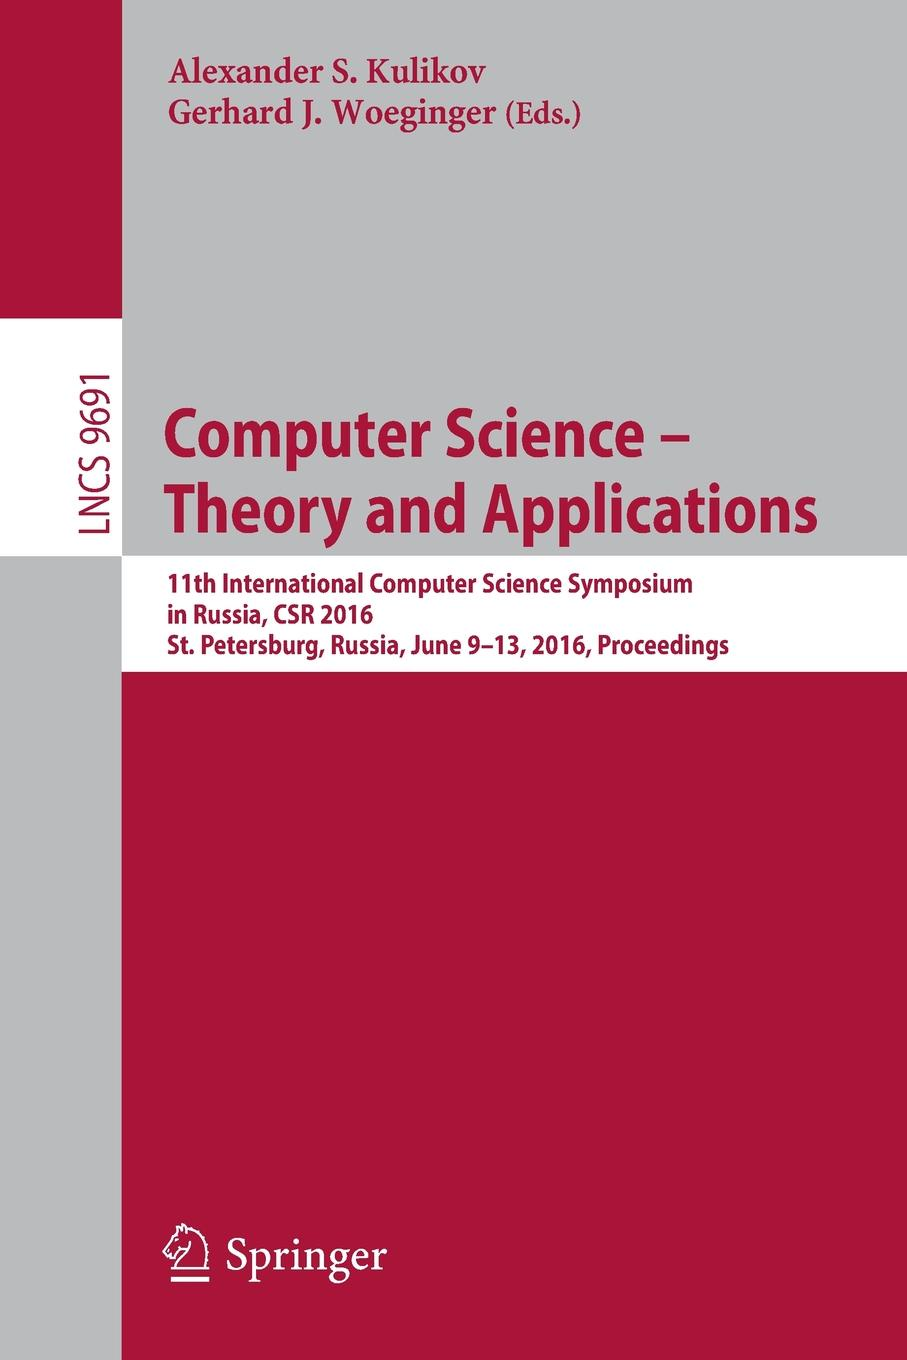 Computer Science - Theory and Applications. 11th International Computer Science Symposium in Russia, CSR 2016, St. Petersburg, Russia, June 9-13, 2016, Proceedings computer